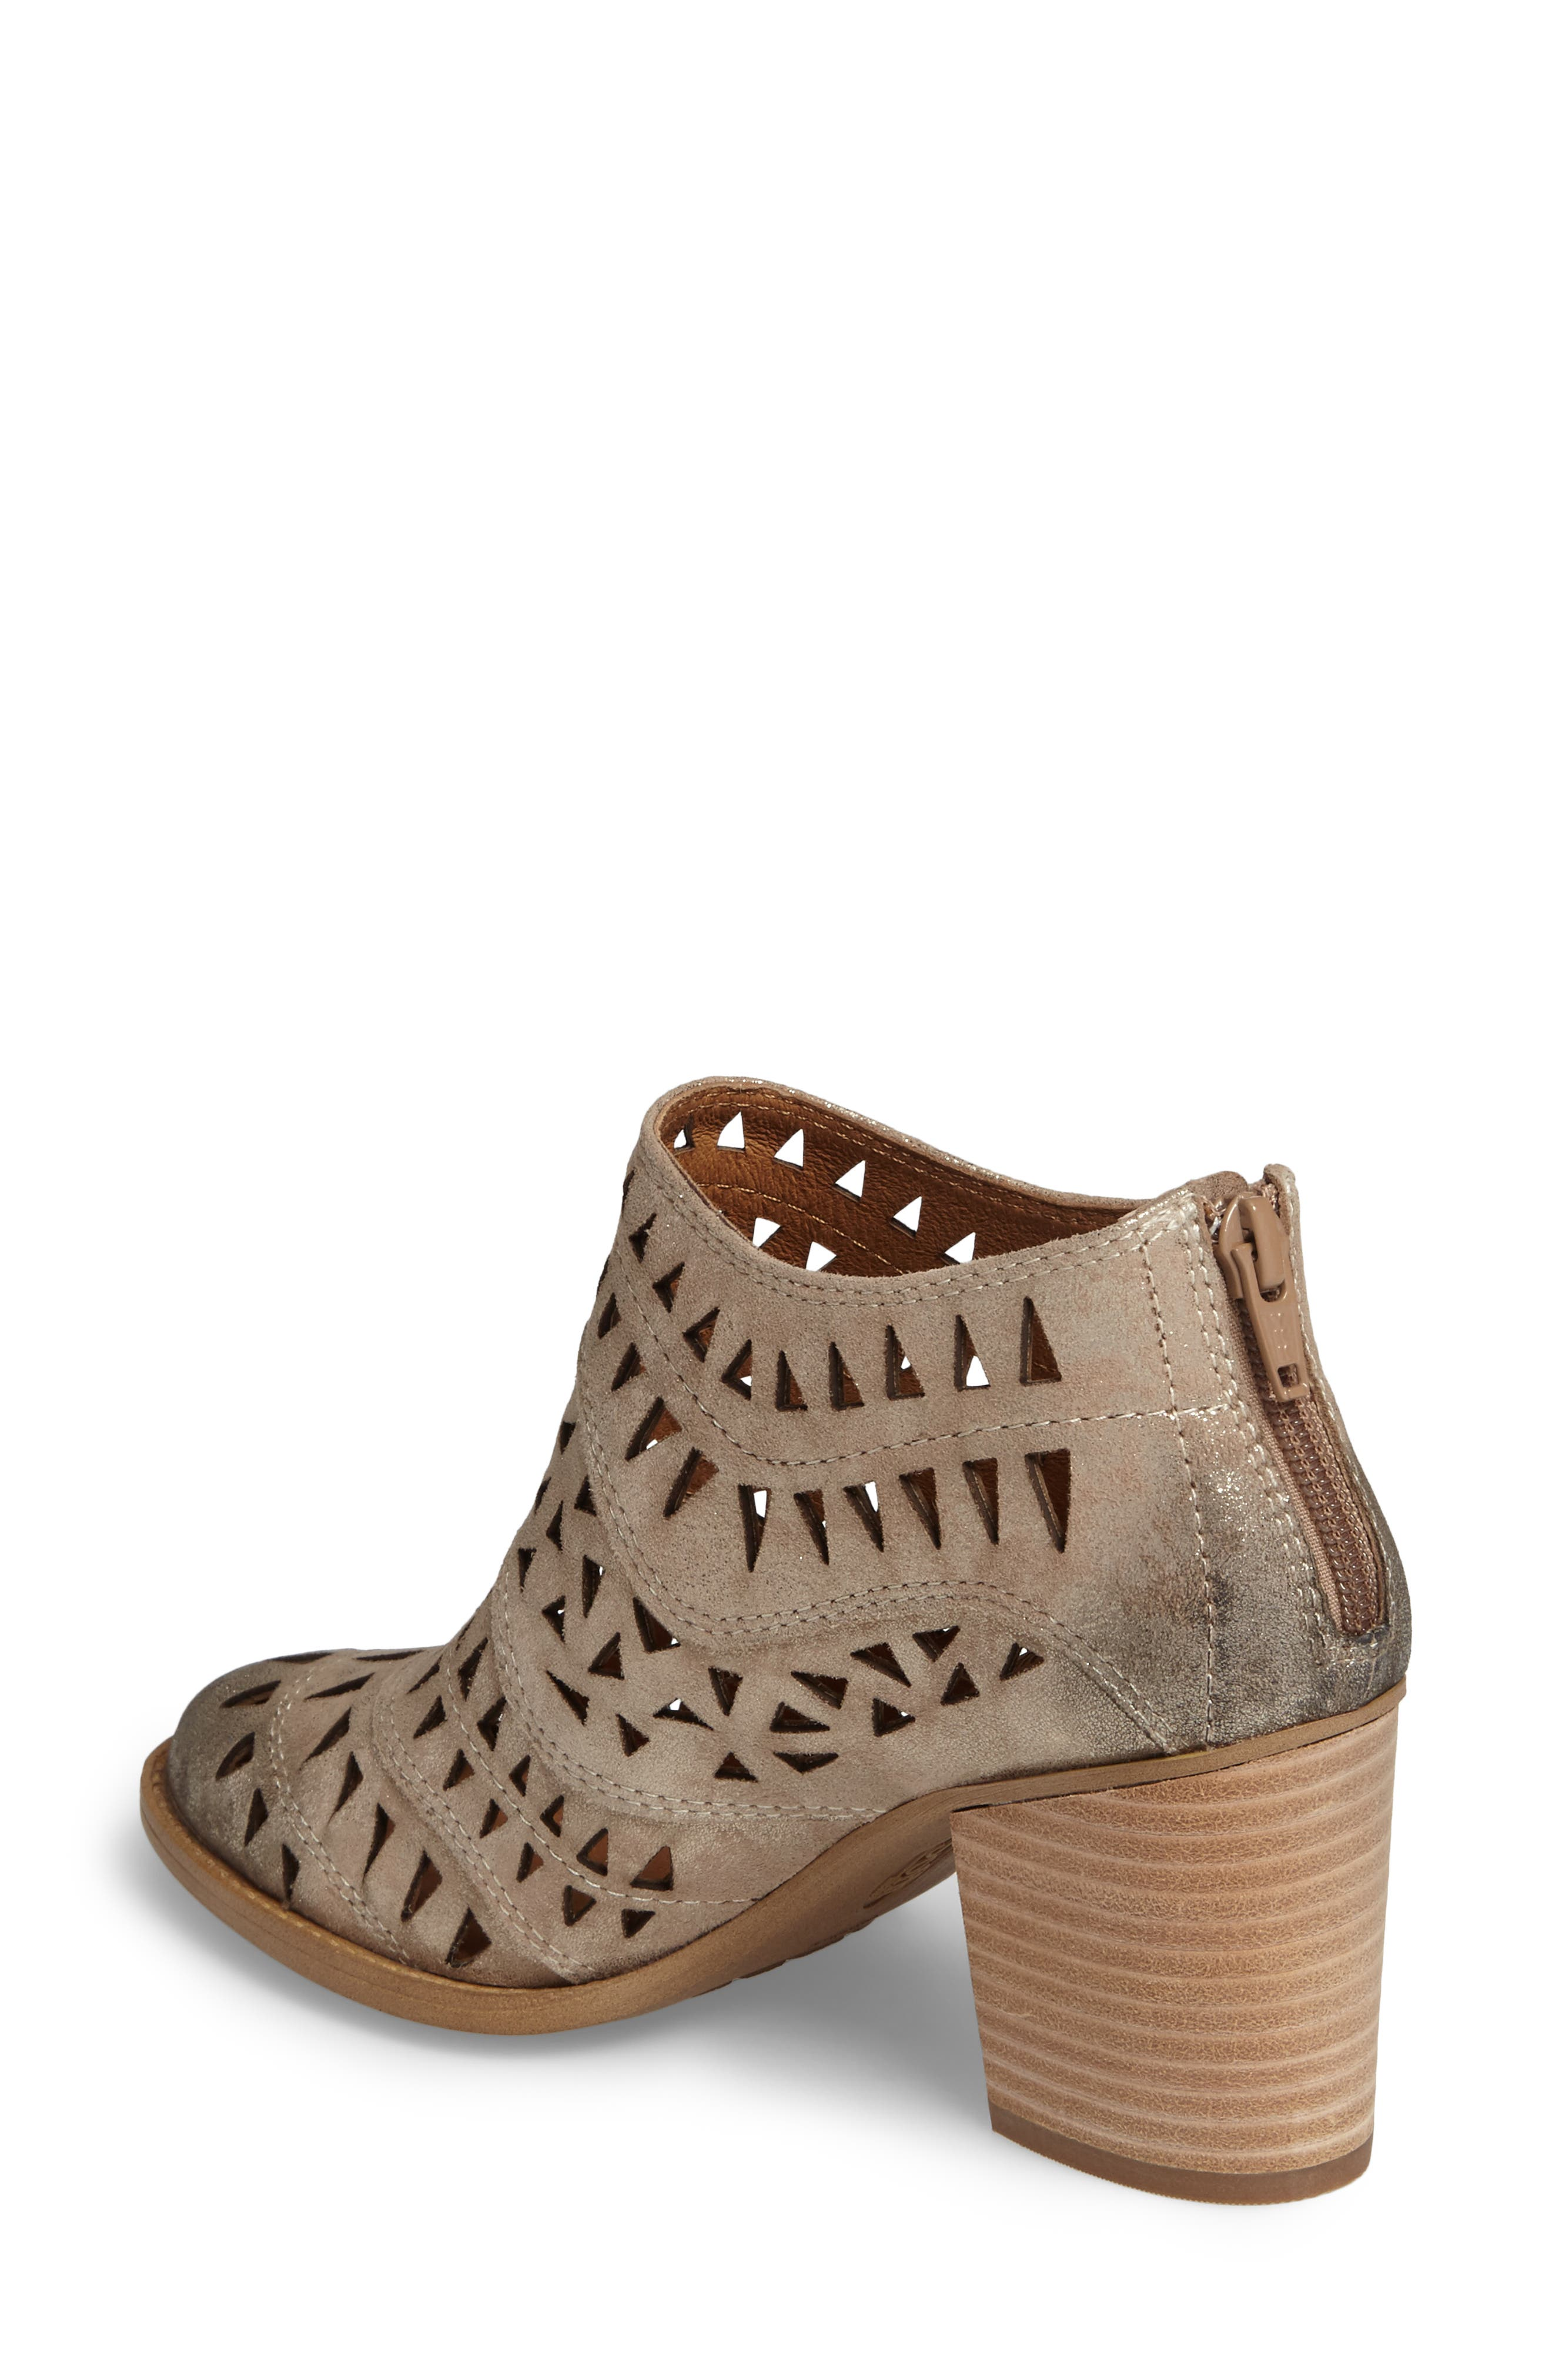 Westwood Laser Cut Bootie,                             Alternate thumbnail 2, color,                             Anthracite Distressed Foil